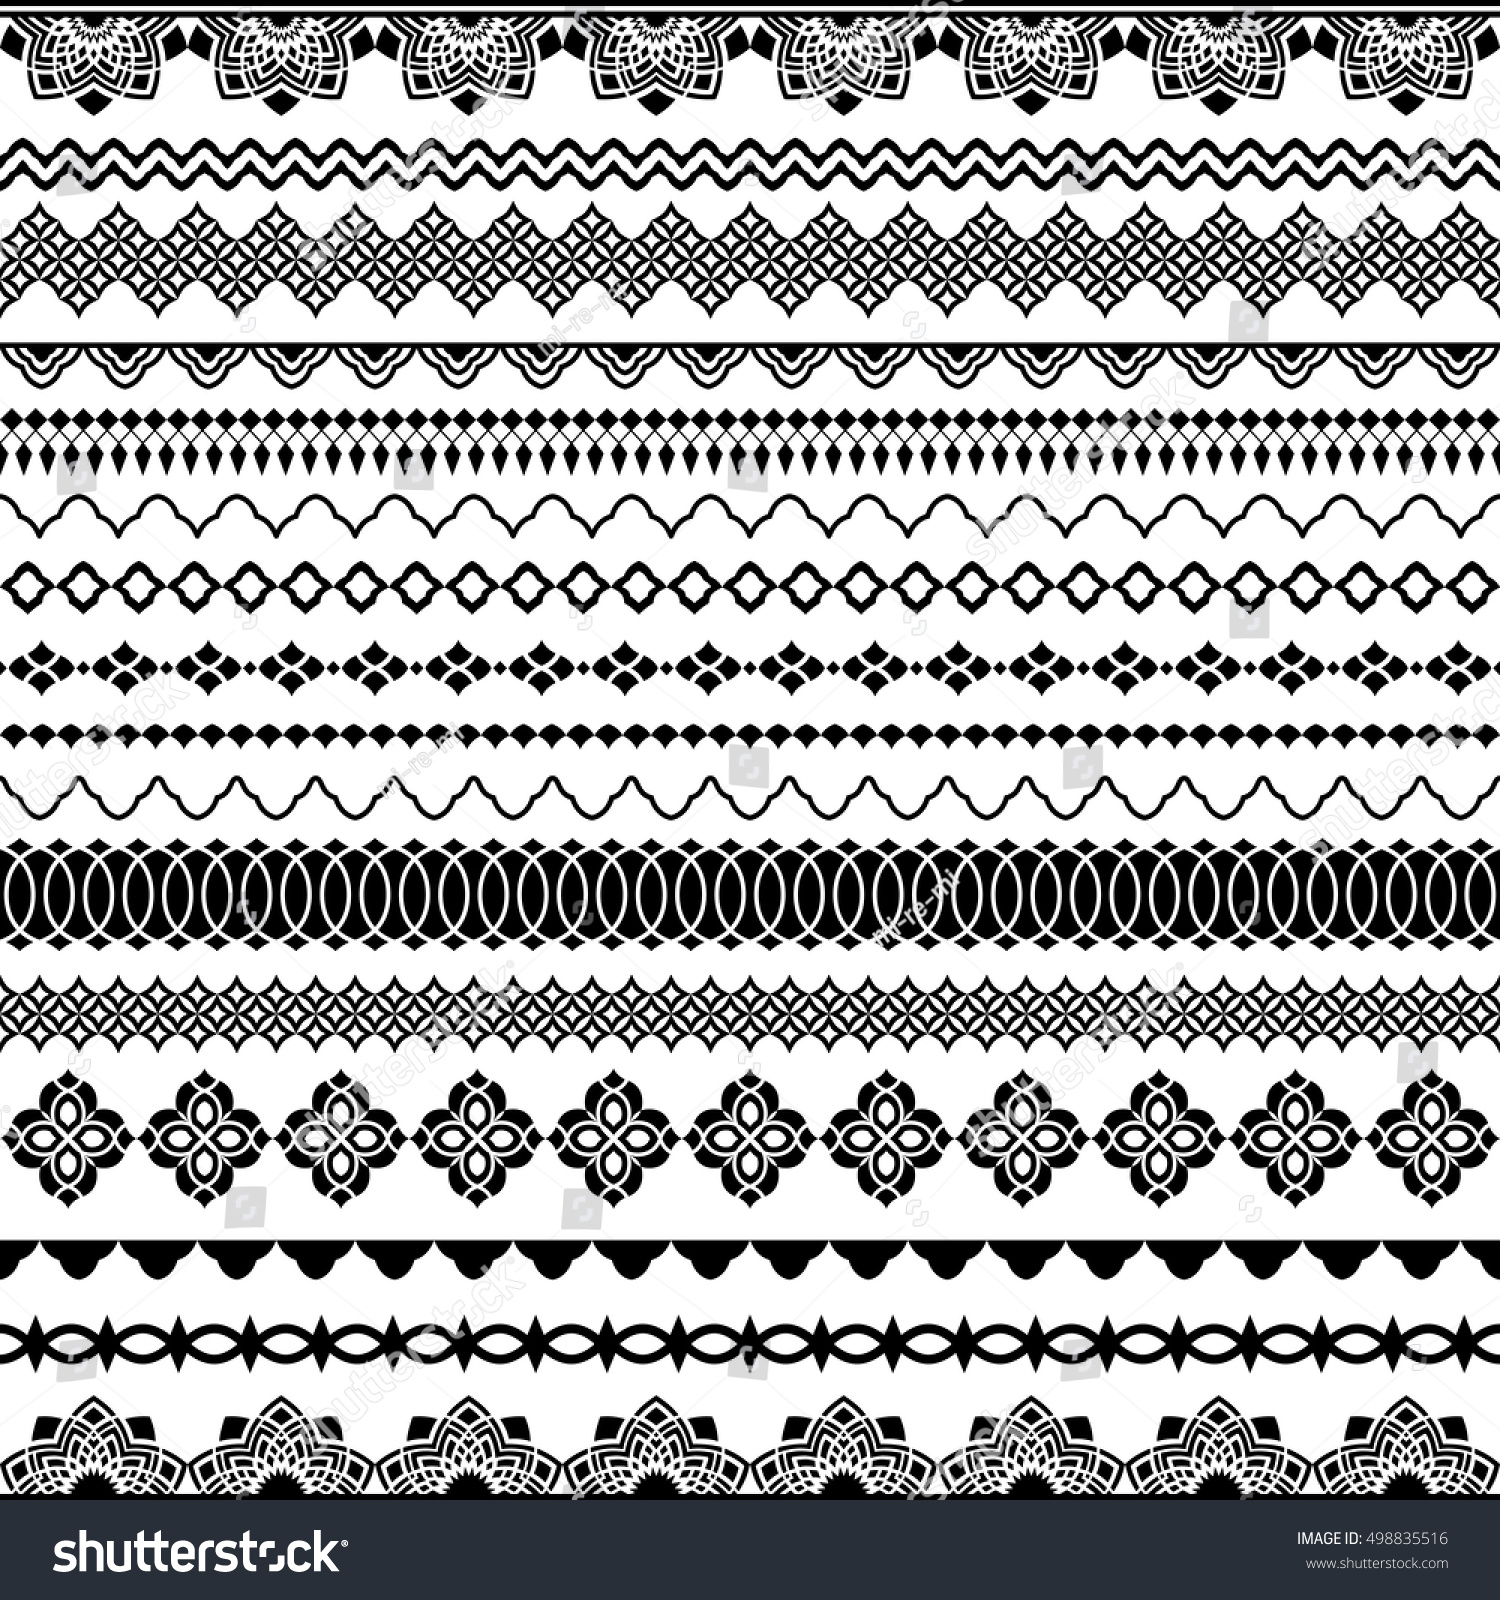 Vector seamless brushes for frames dividers borders Classic oriental style to decorate text design greeting card invitations